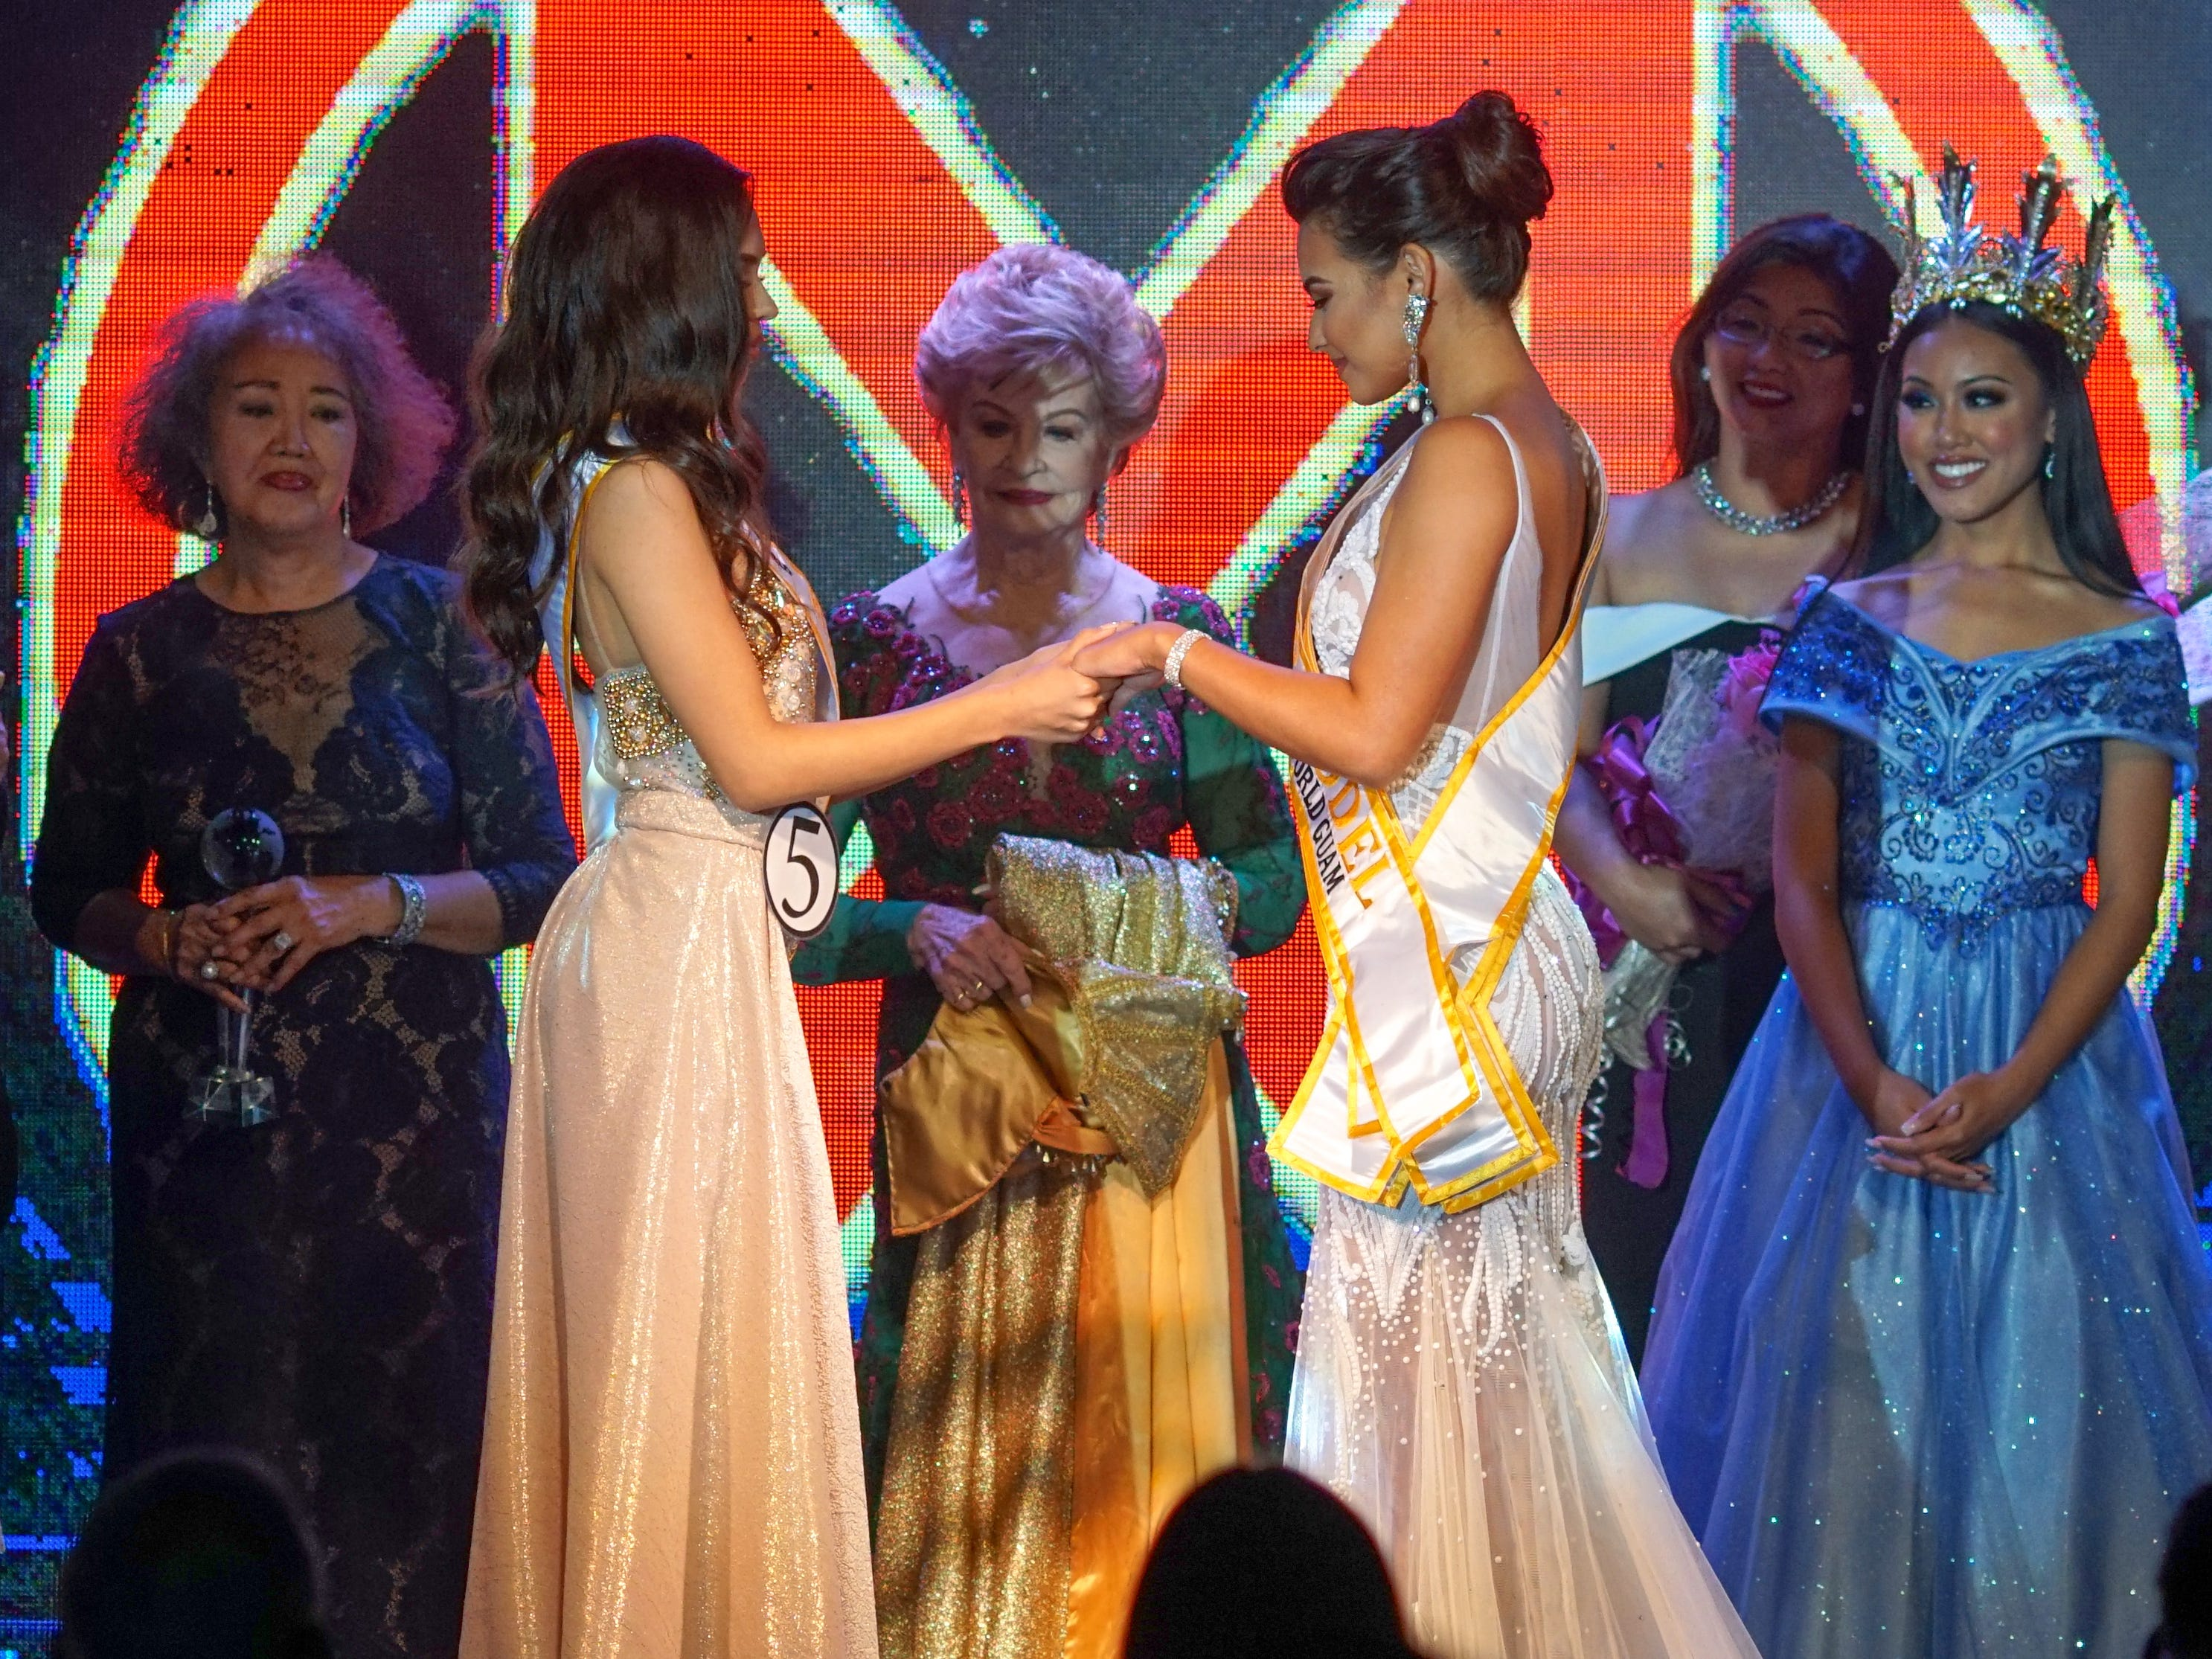 Madeleine Bordallo stands between the remaining two  Contestants #5 Cyndal Abad and #2 Gianna Camacho Sgambelluri as they await the winner to be called as the 2018 Miss World Guam pageant Queen.